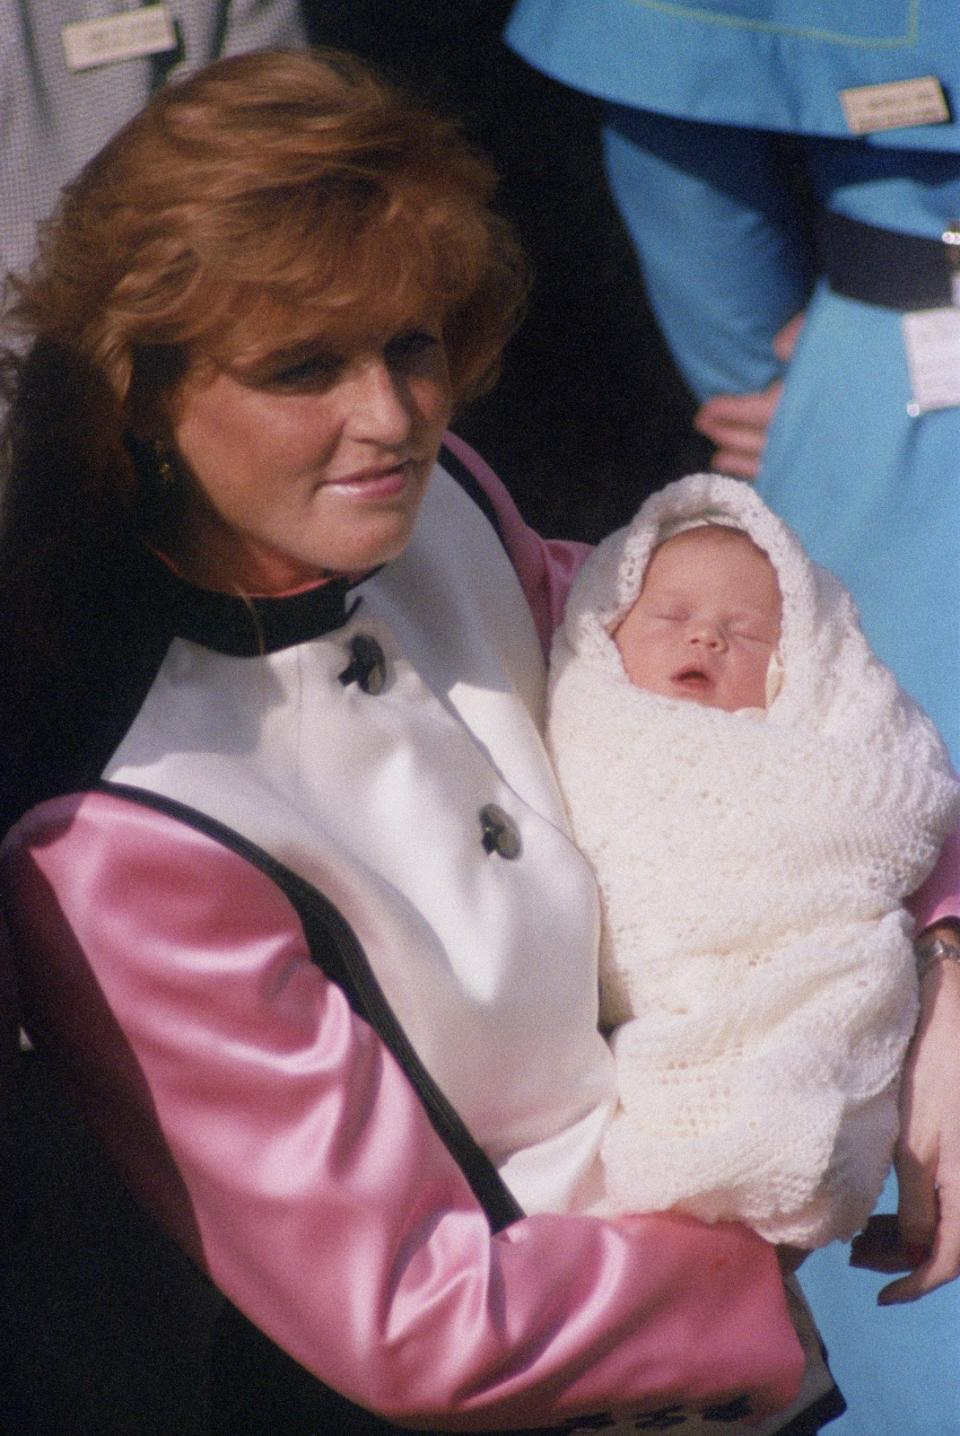 <p>Sarah, Duchess of York leaves the Portland Hospital in London with her new daughter, Princess Eugenie, in March 1990. (Colin Davey/Getty Images)</p>